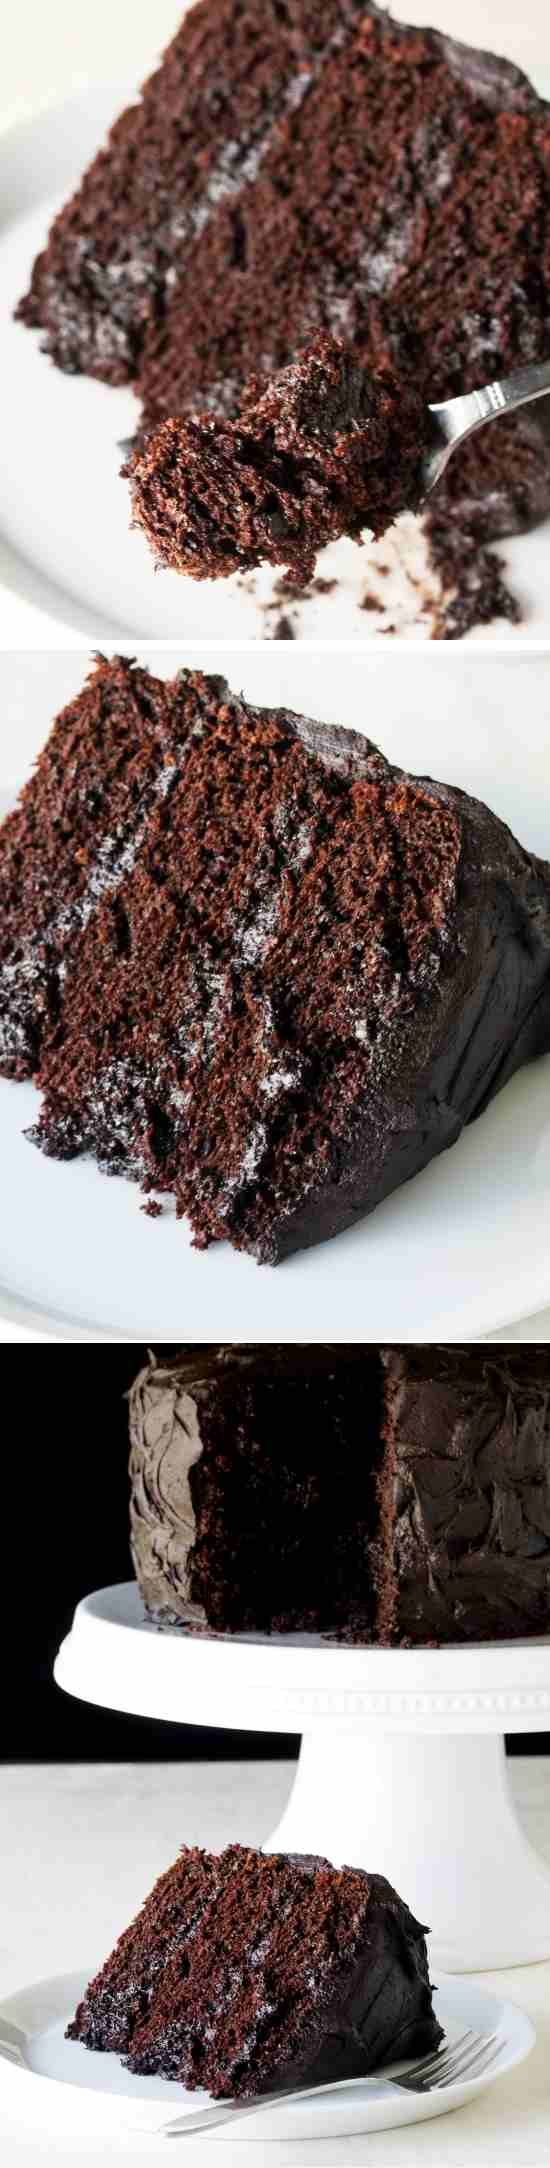 The Most Amazing Chocolate Cake is here. I call this my Matilda Cake because I swear it's just as good …